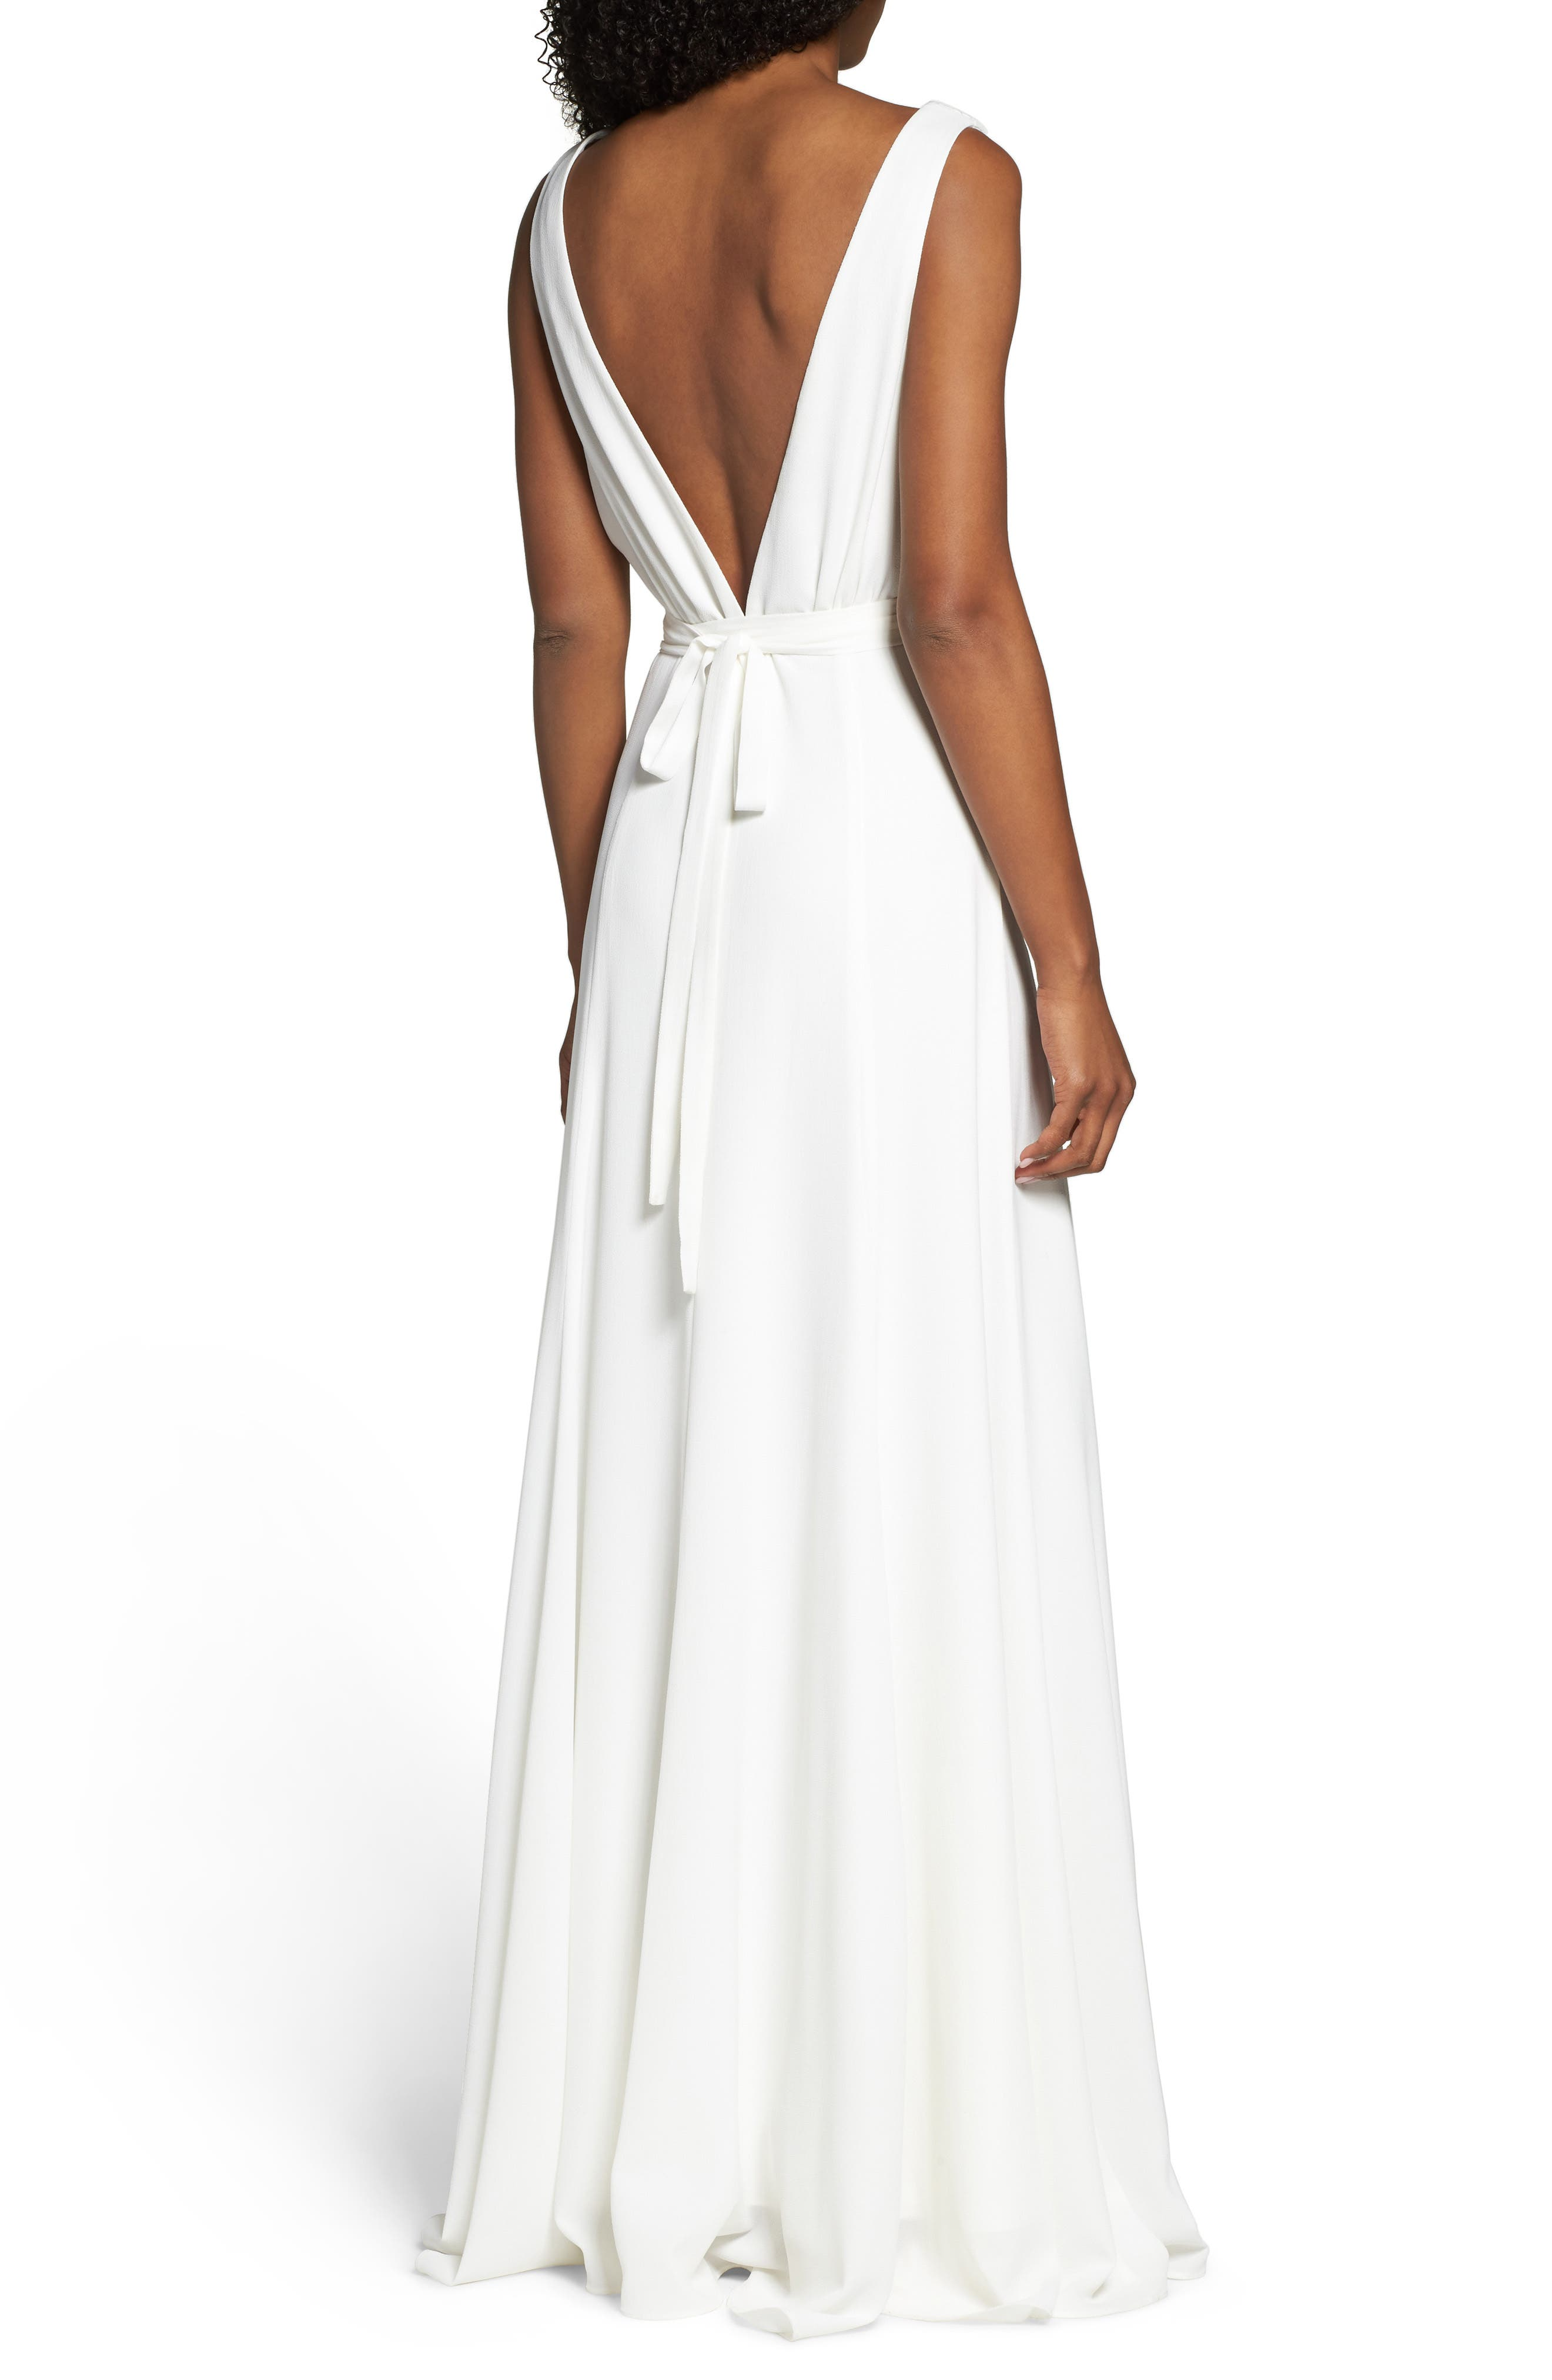 Jagger Plunging Wrap Dress,                             Alternate thumbnail 2, color,                             WHITE